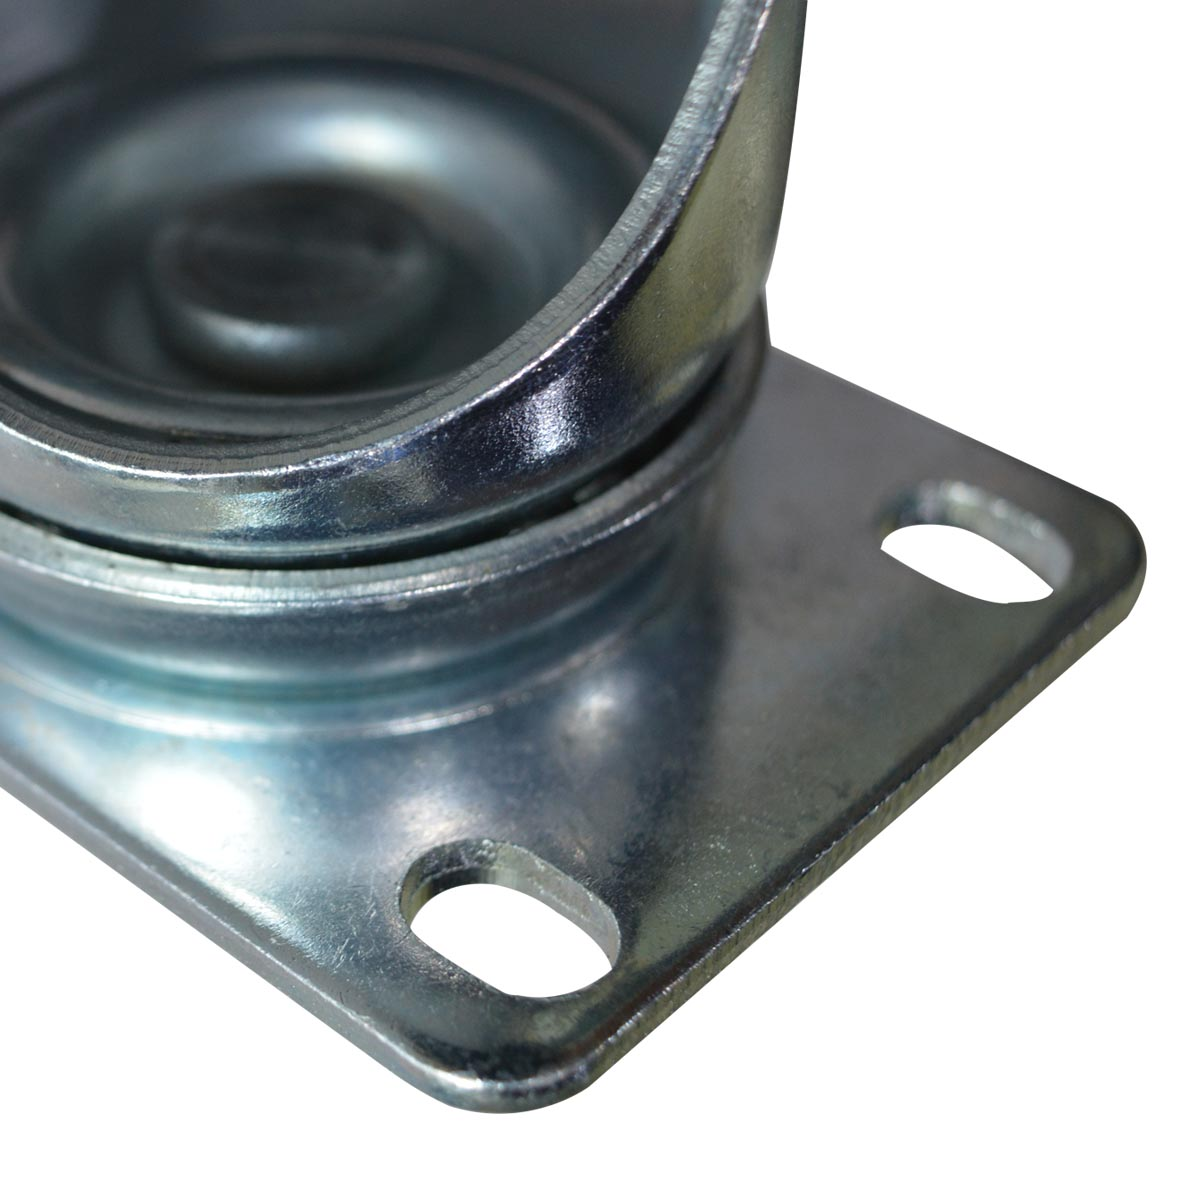 Box Truck Caster Replacement Kit for sale